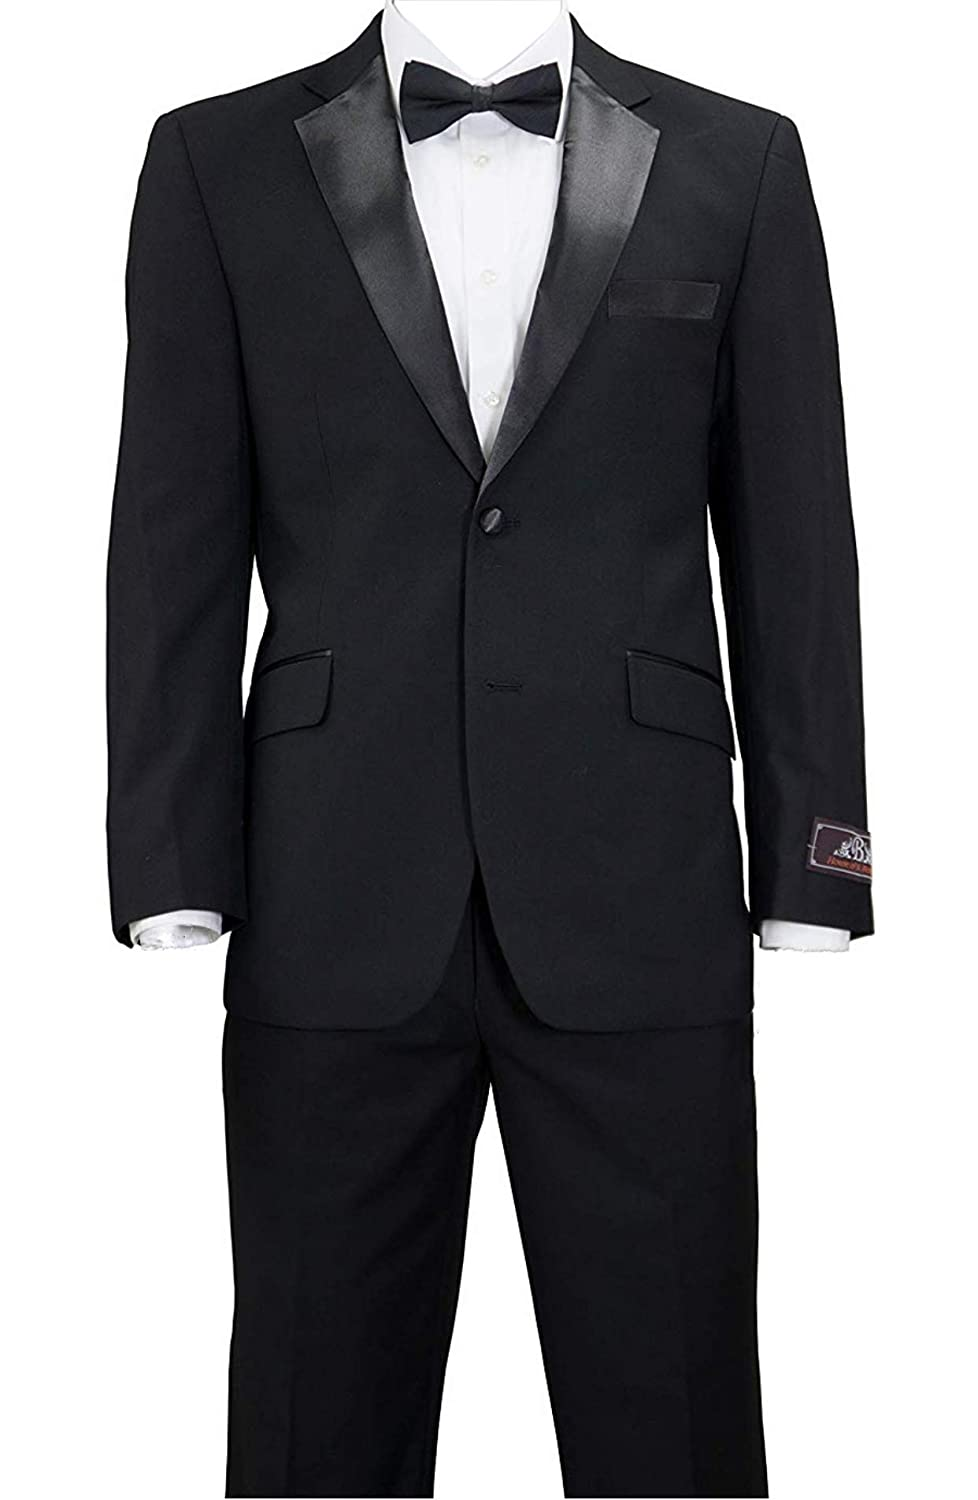 2a2c77d16 House of St. Benets Modern Fit Tuxedo - Black, 42 Long at Amazon Men's  Clothing store: